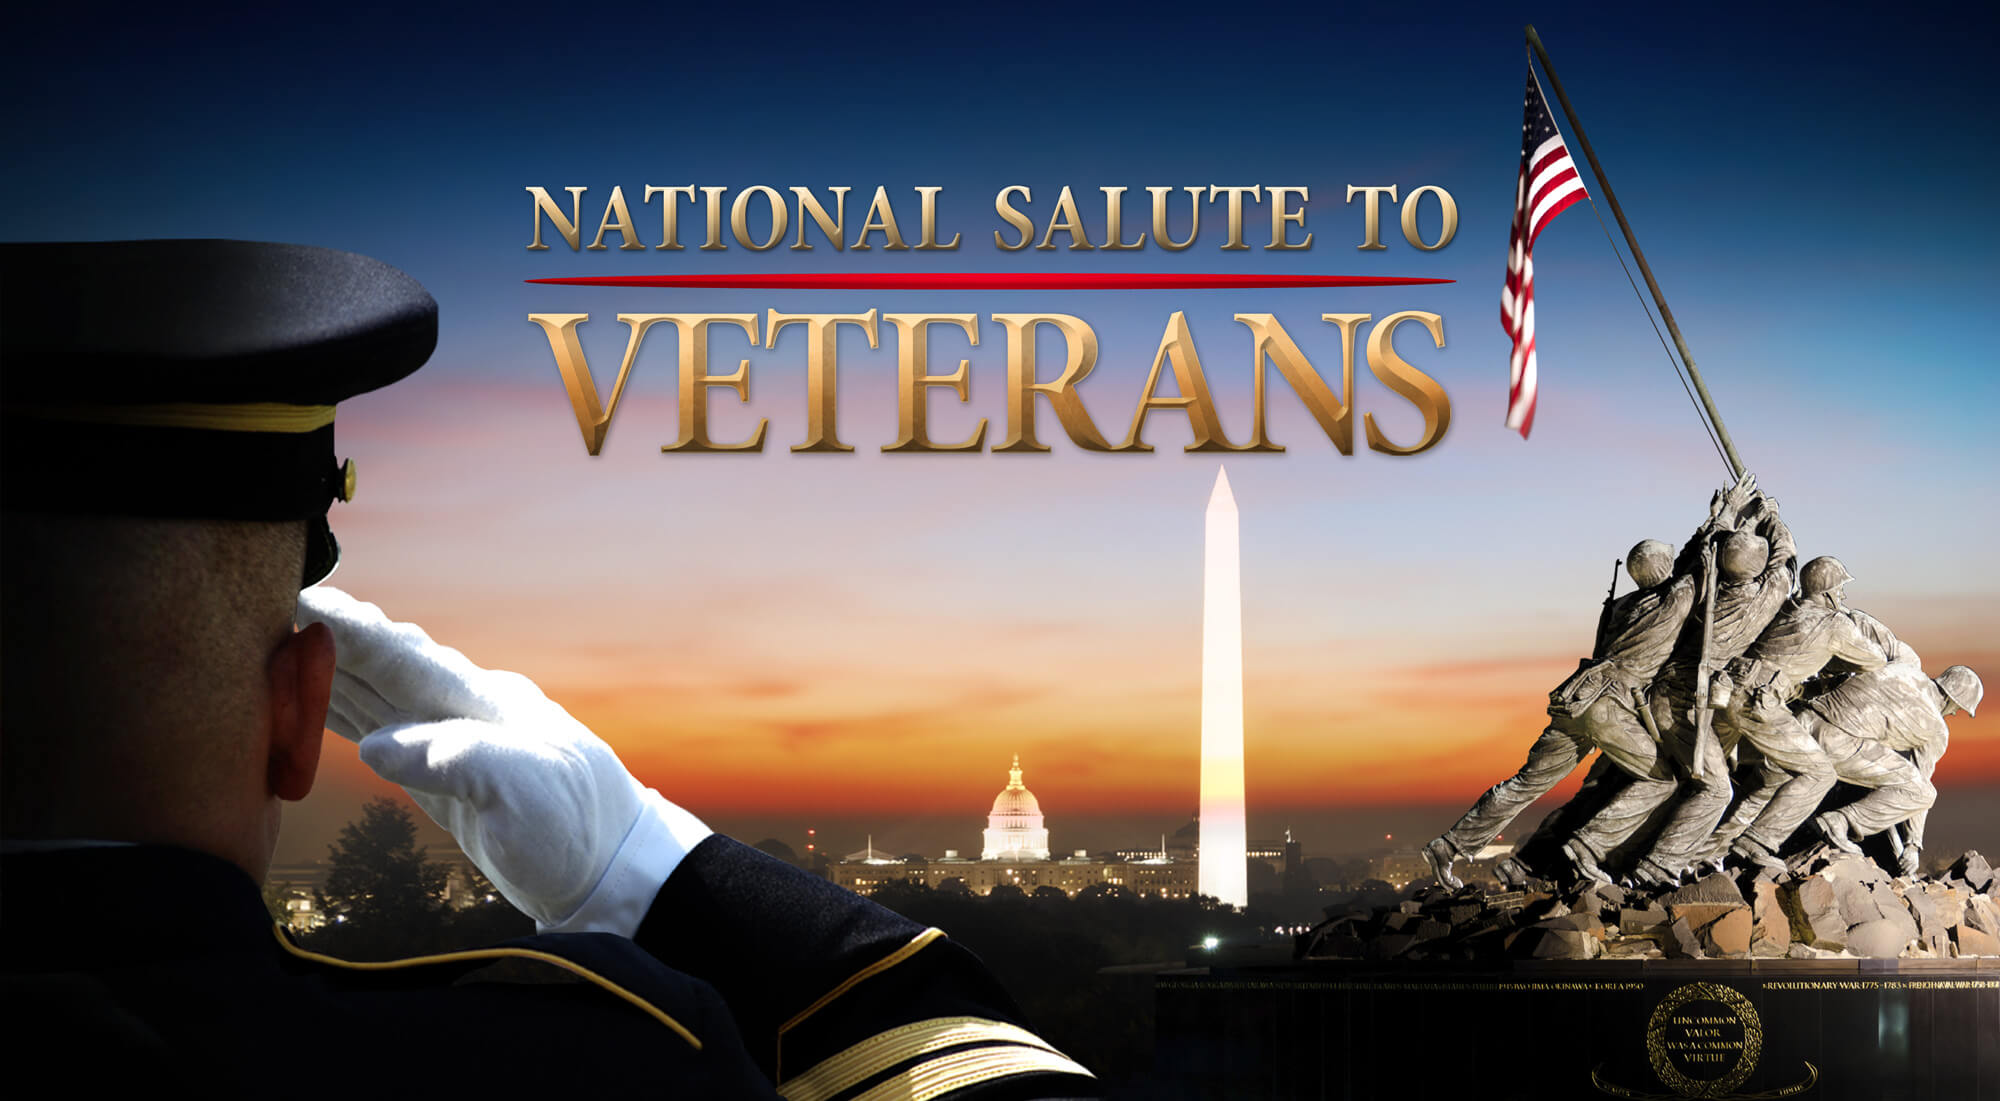 veterans day america usa salute honoring hd wallpaper